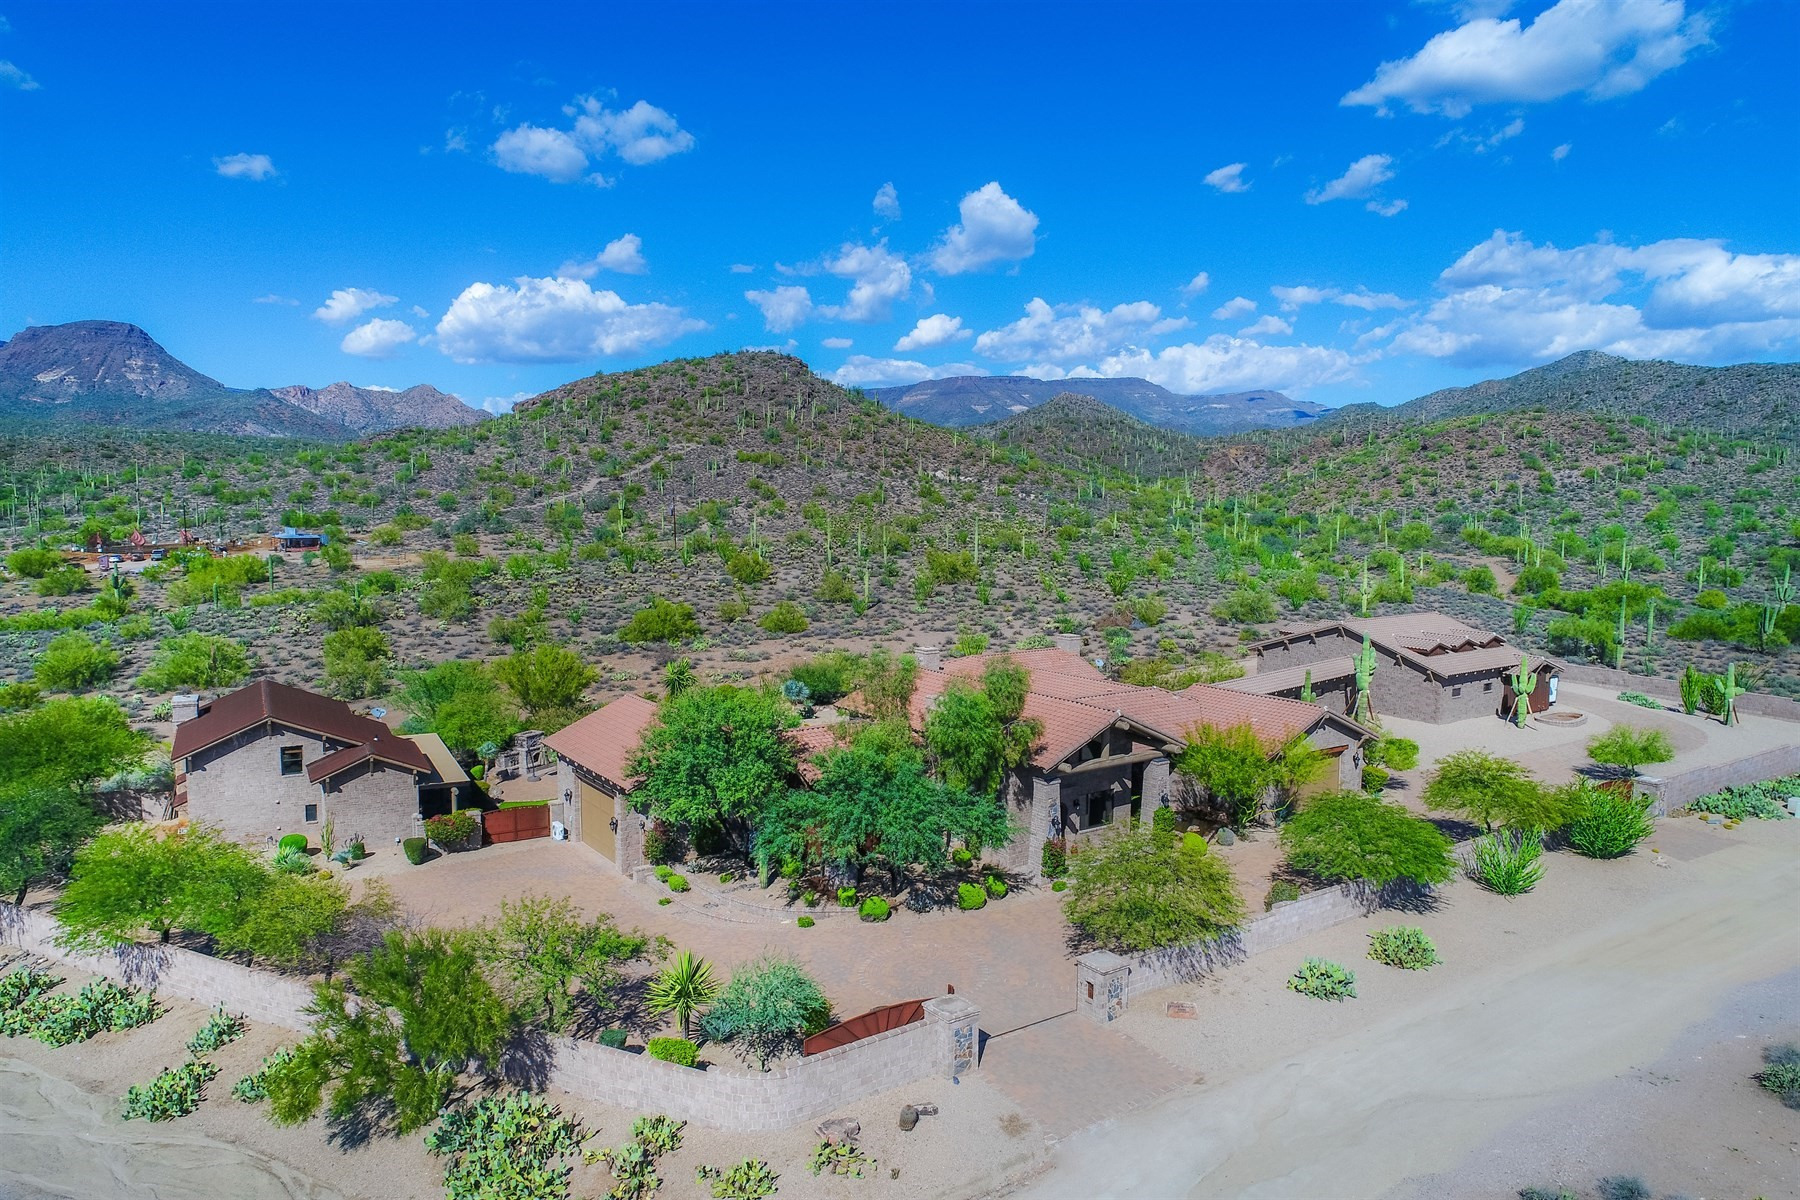 Single Family Homes for Sale at Gated Estate Compound in the Mountains 42531 N Spur Cross Rd Cave Creek, Arizona 85331 United States